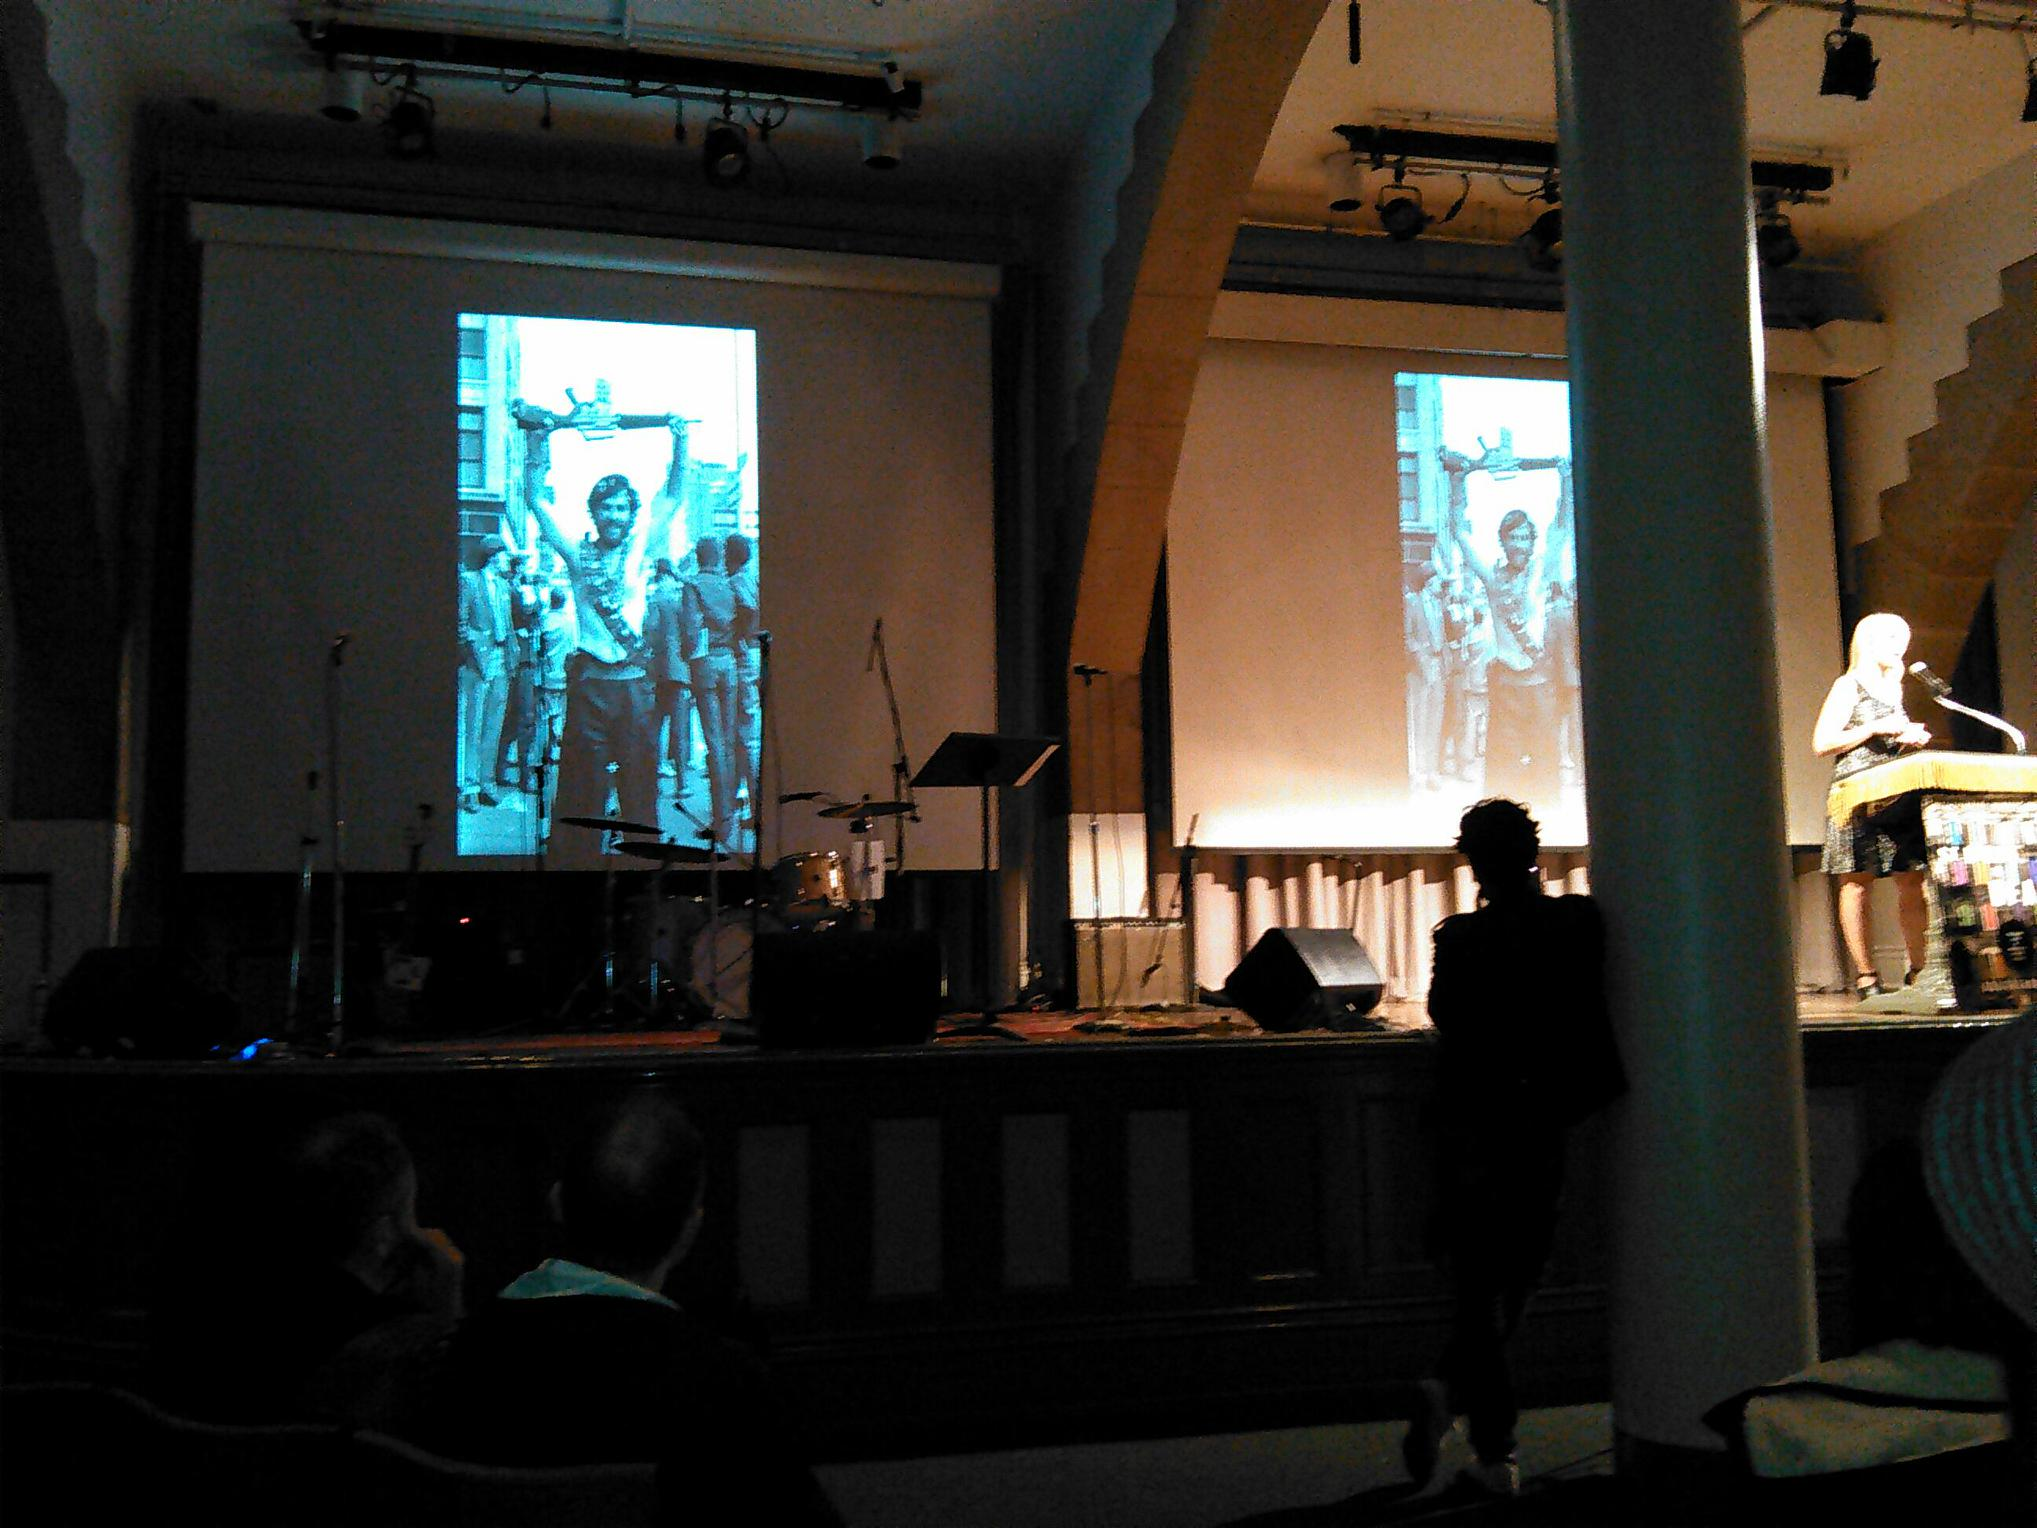 Ada Calhoun on the Cooper Union Great Hall stage with a Fred W. McDarrah image of Jerry Rubin on St. Mark's Place on the screen behind her.